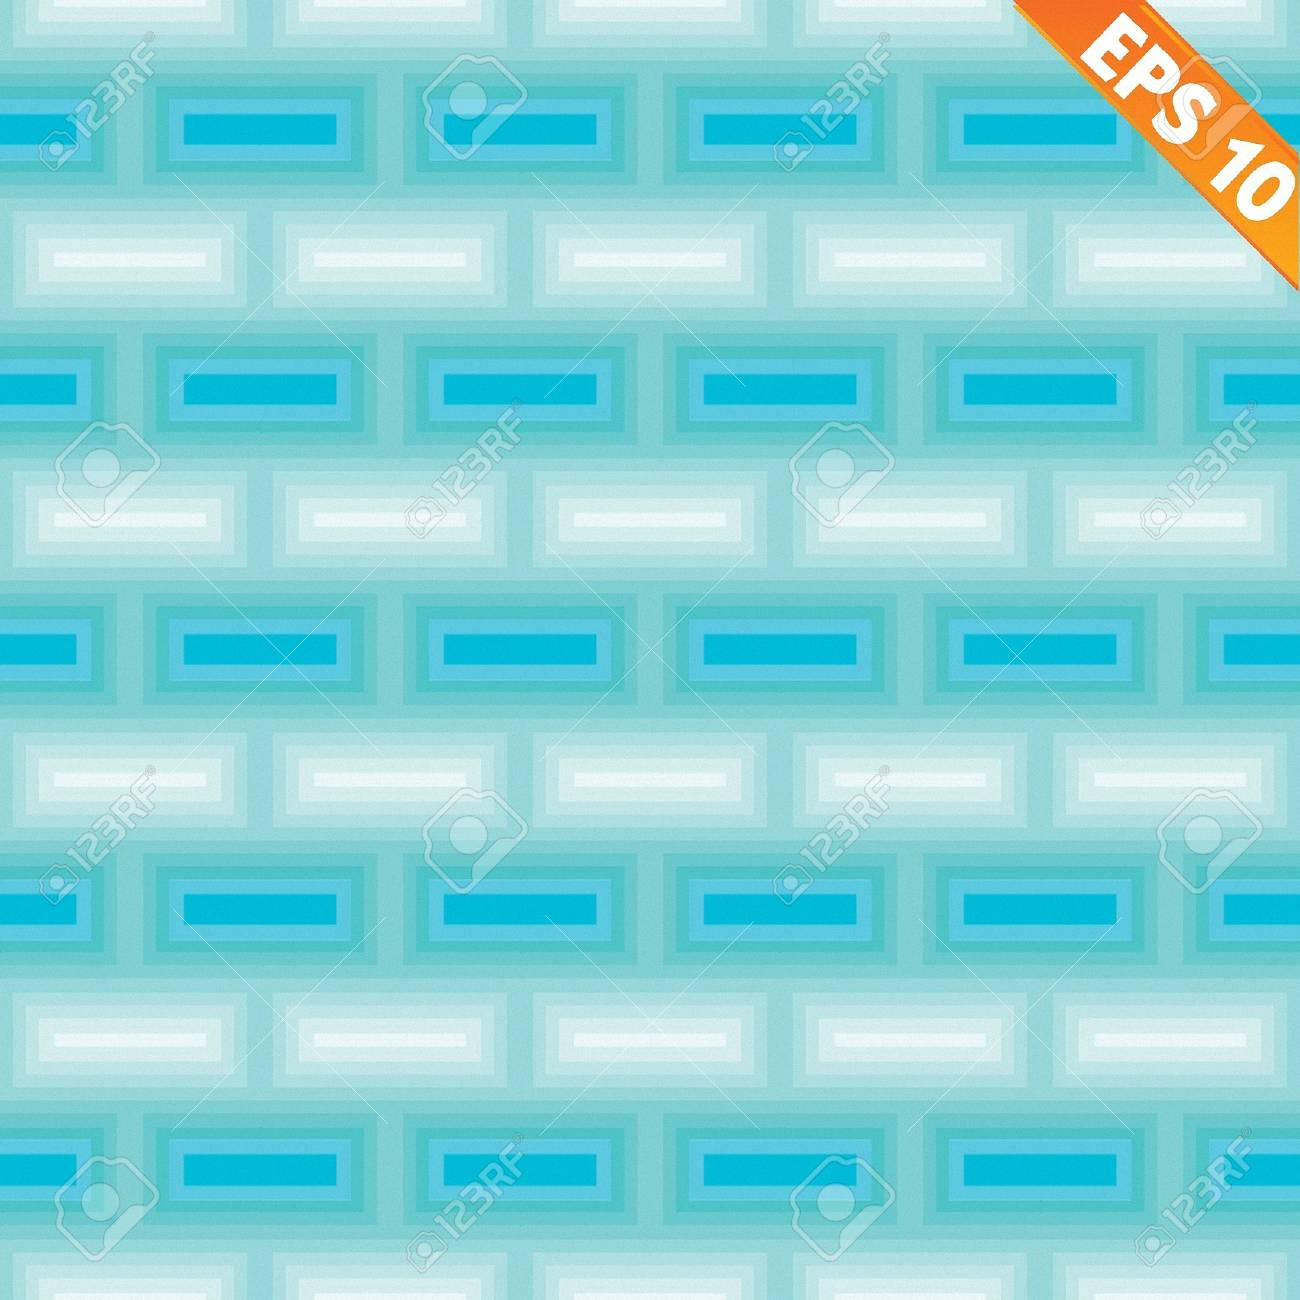 Pattern seamless background -  Vector illustration Stock Vector - 22068778